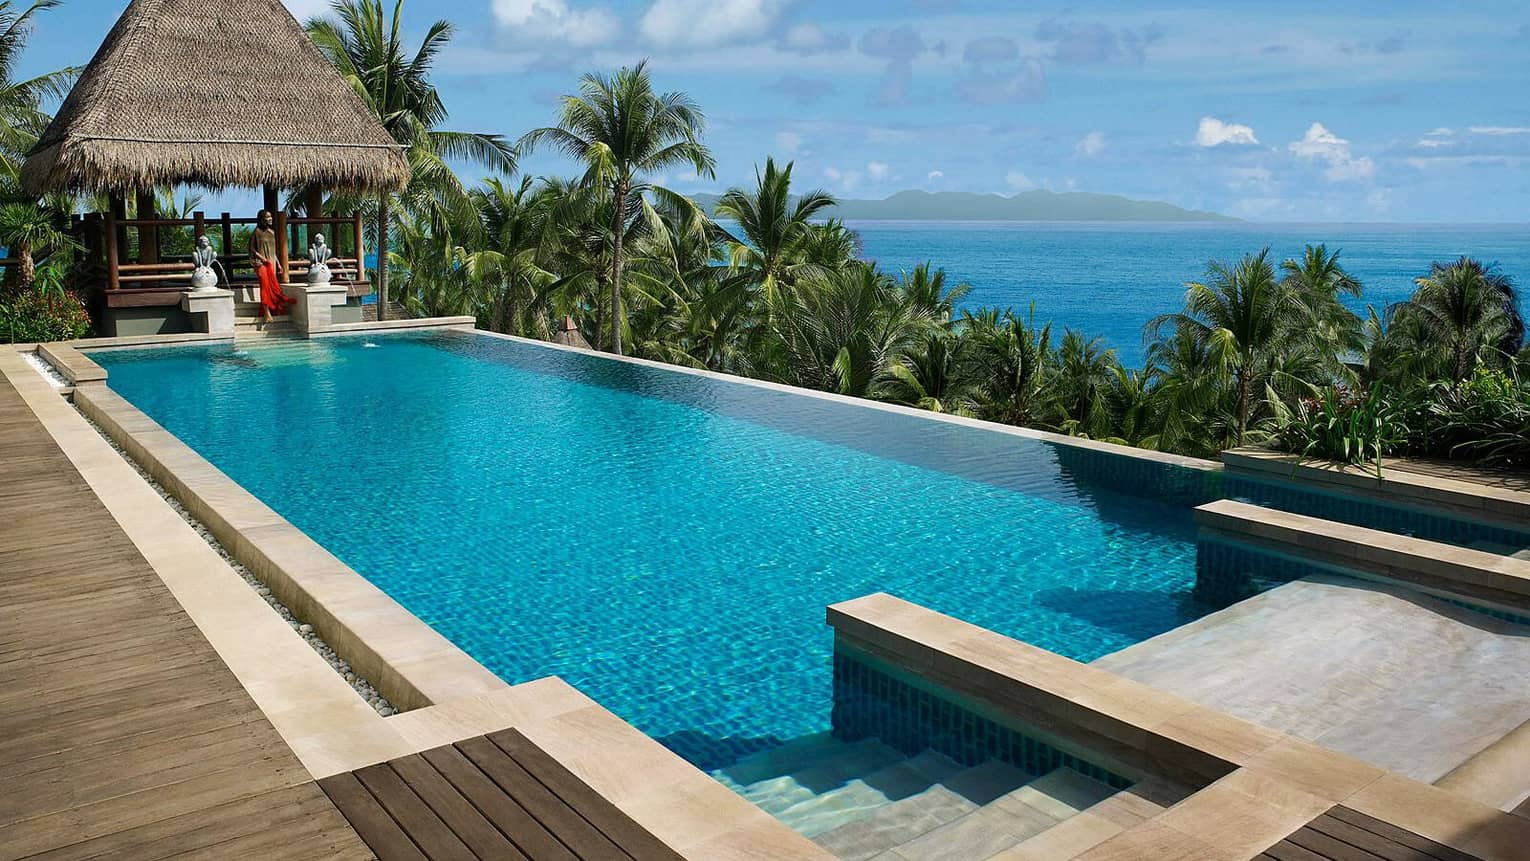 Five-Bedroom Residence Villa with Pool on sunny deck, cabana with thatched roof, ocean view